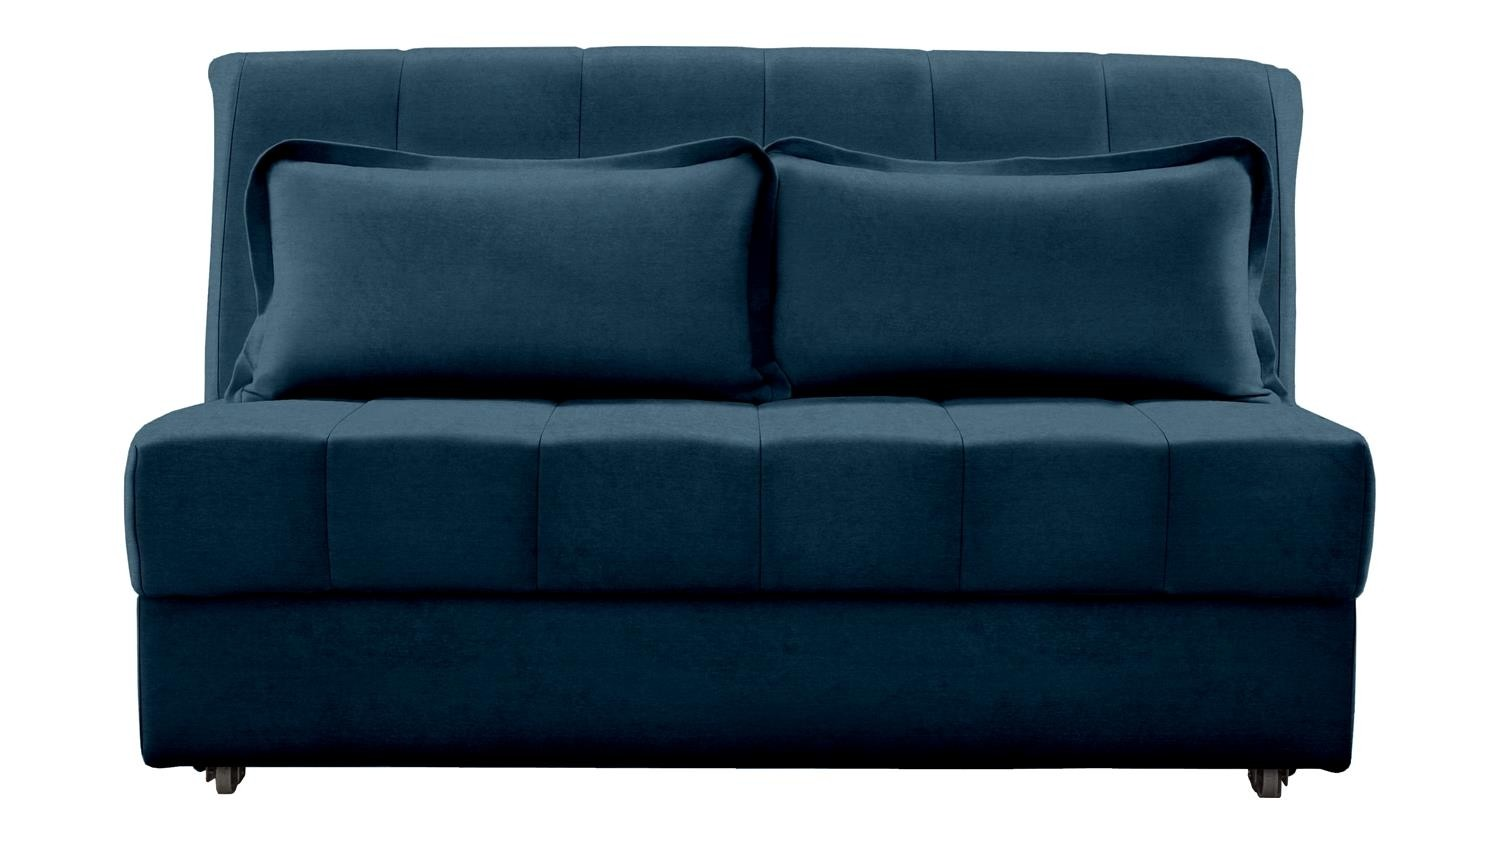 The Appley 4 Seater Sofa Bed